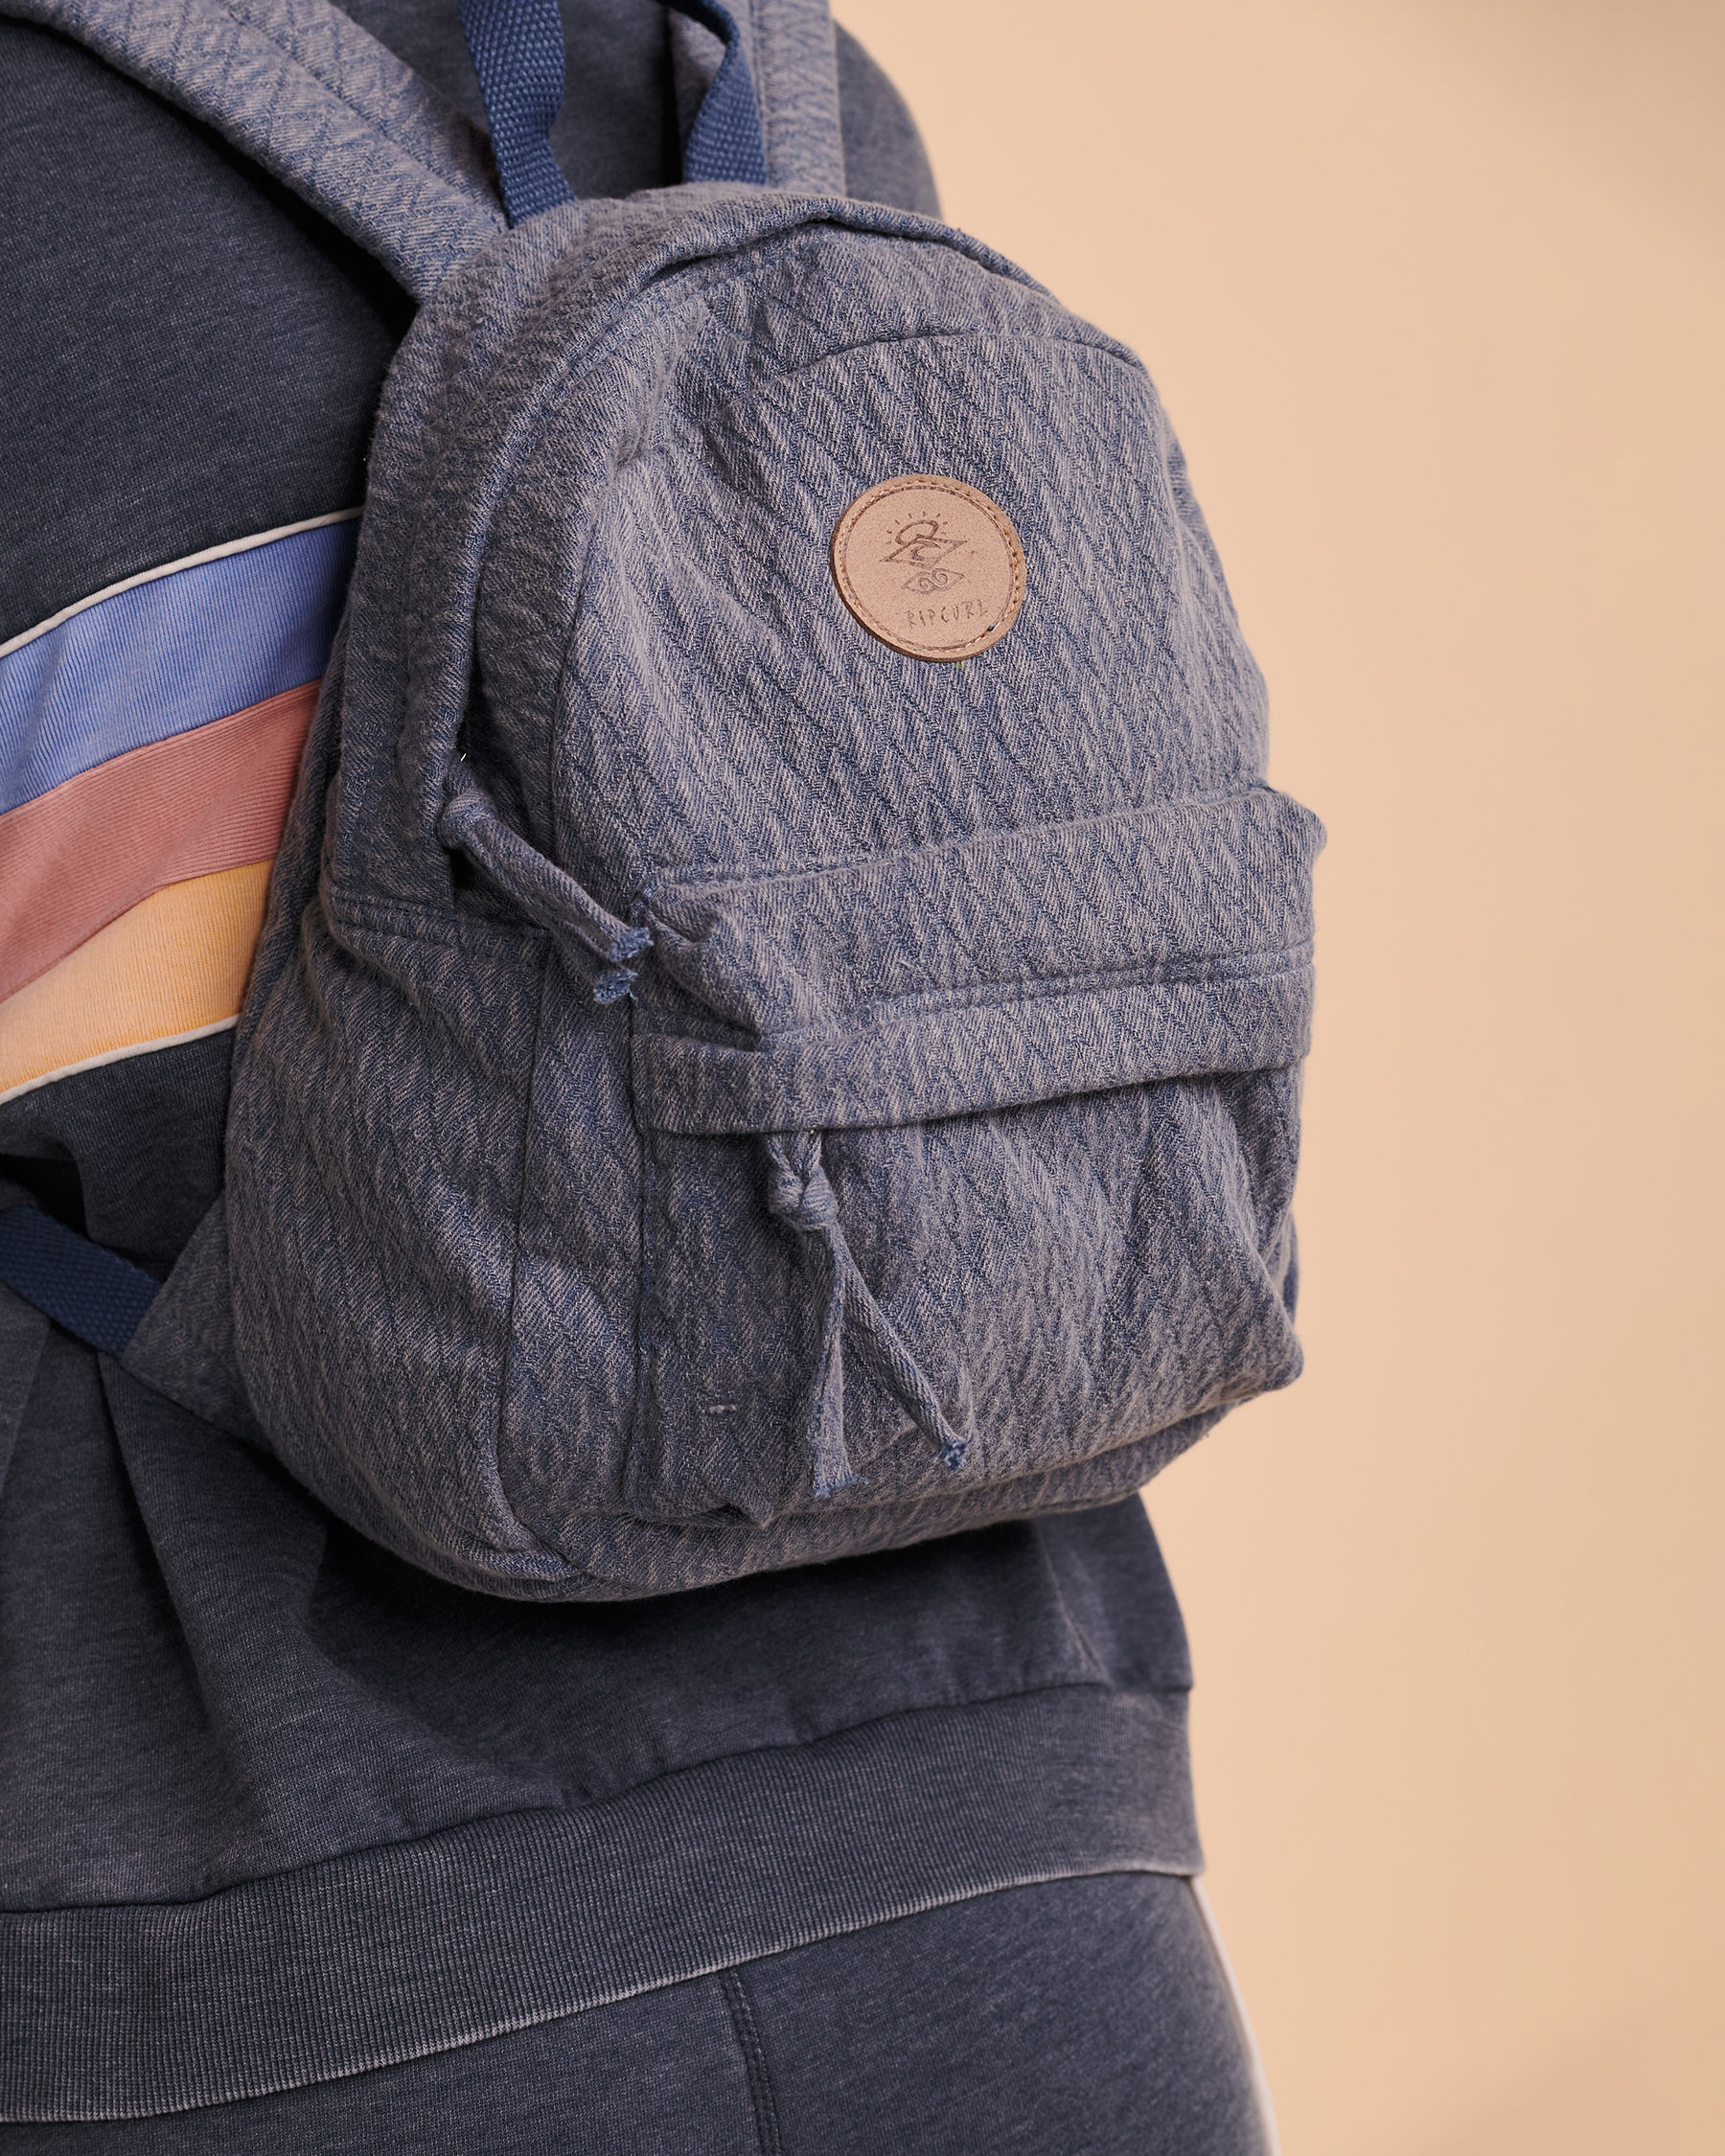 RIP CURL Jacquard Cotton Mini Backpack Washed navy LBPOP1 - View3